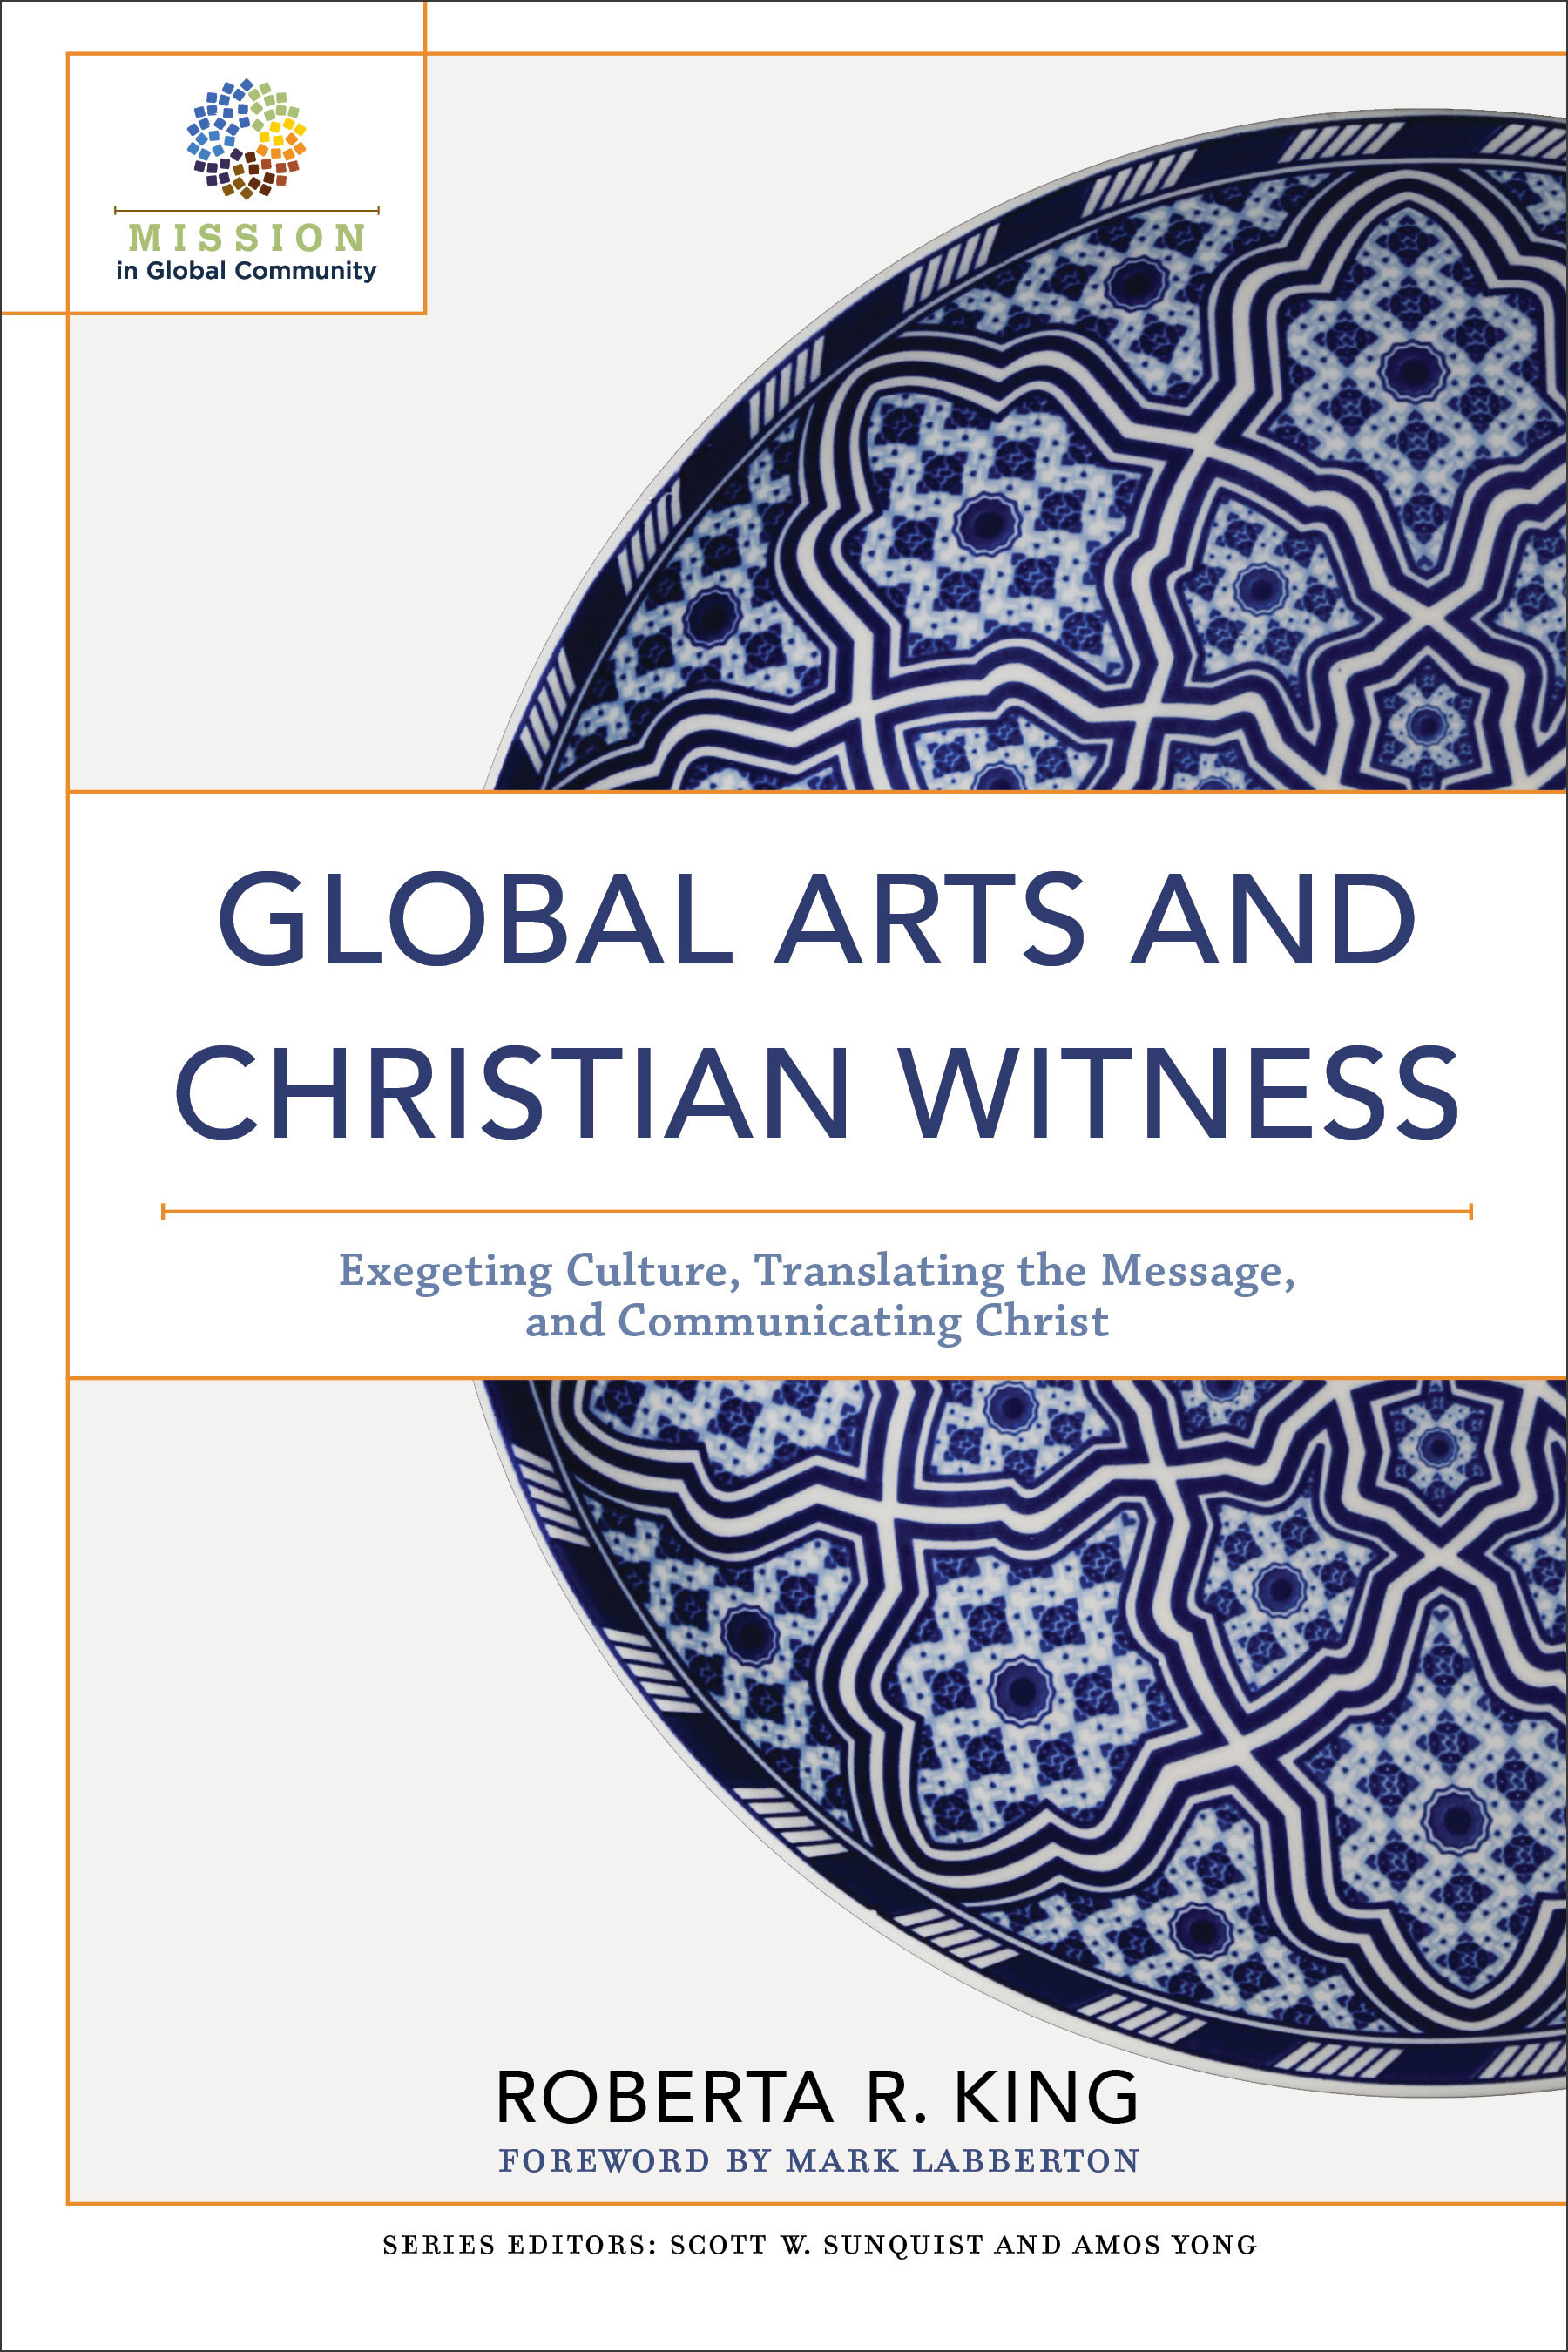 Global Arts and Christian Witness: Exegeting Culture, Translating the Message, and Communicating Christ (Mission in Global Community)